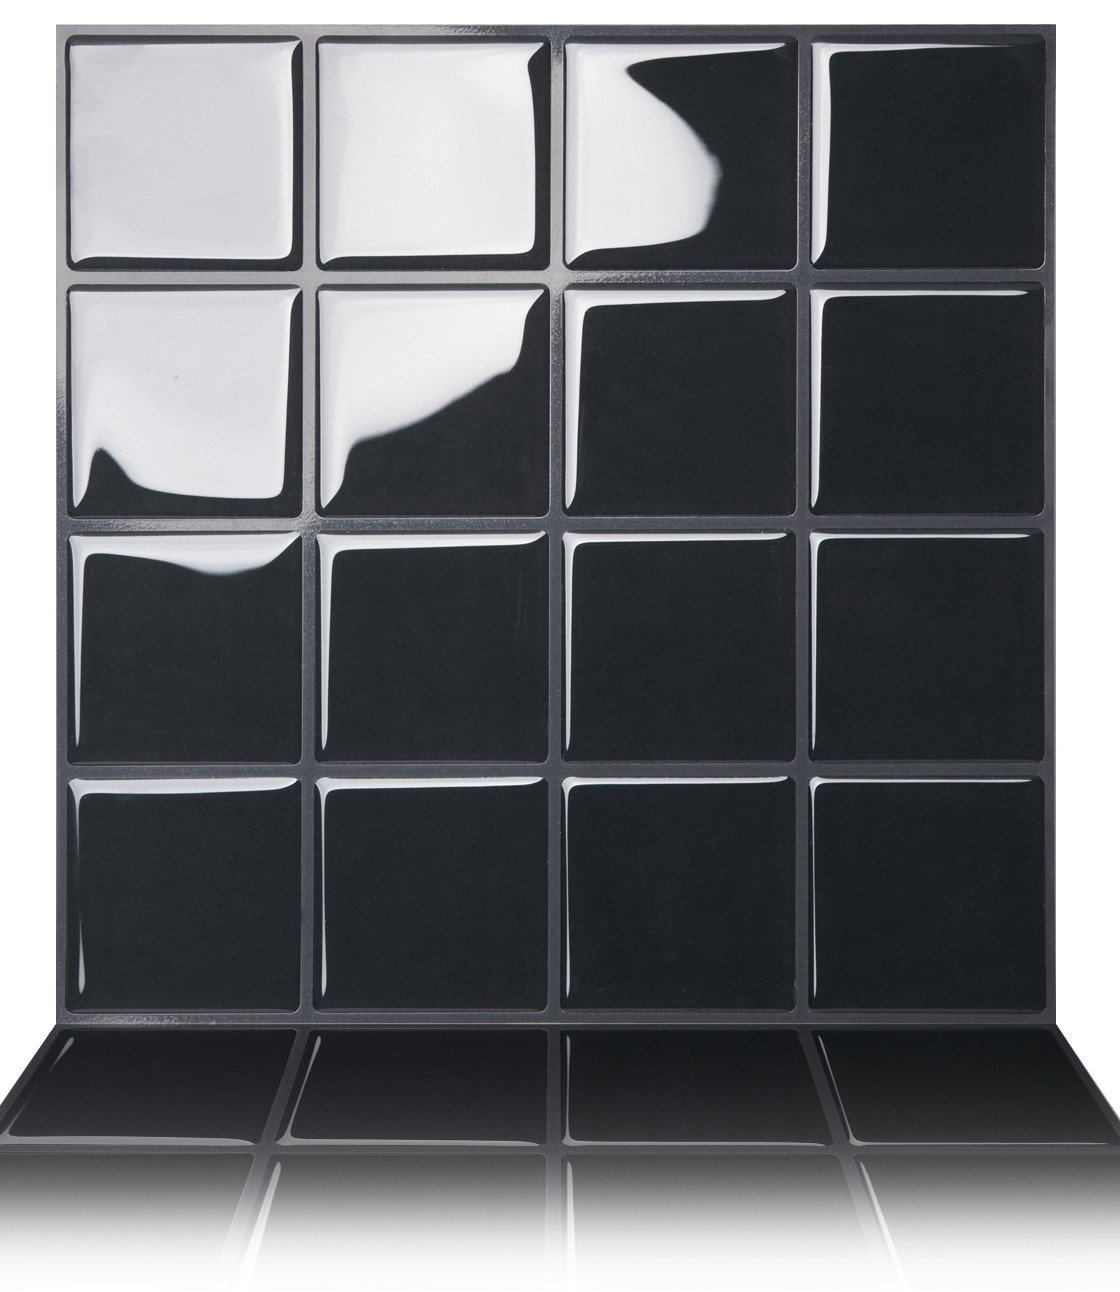 Tic Tac Tiles Premium Anti Mold Peel and Stick Wall Tile in Big Square Black (10 Tiles, Black)